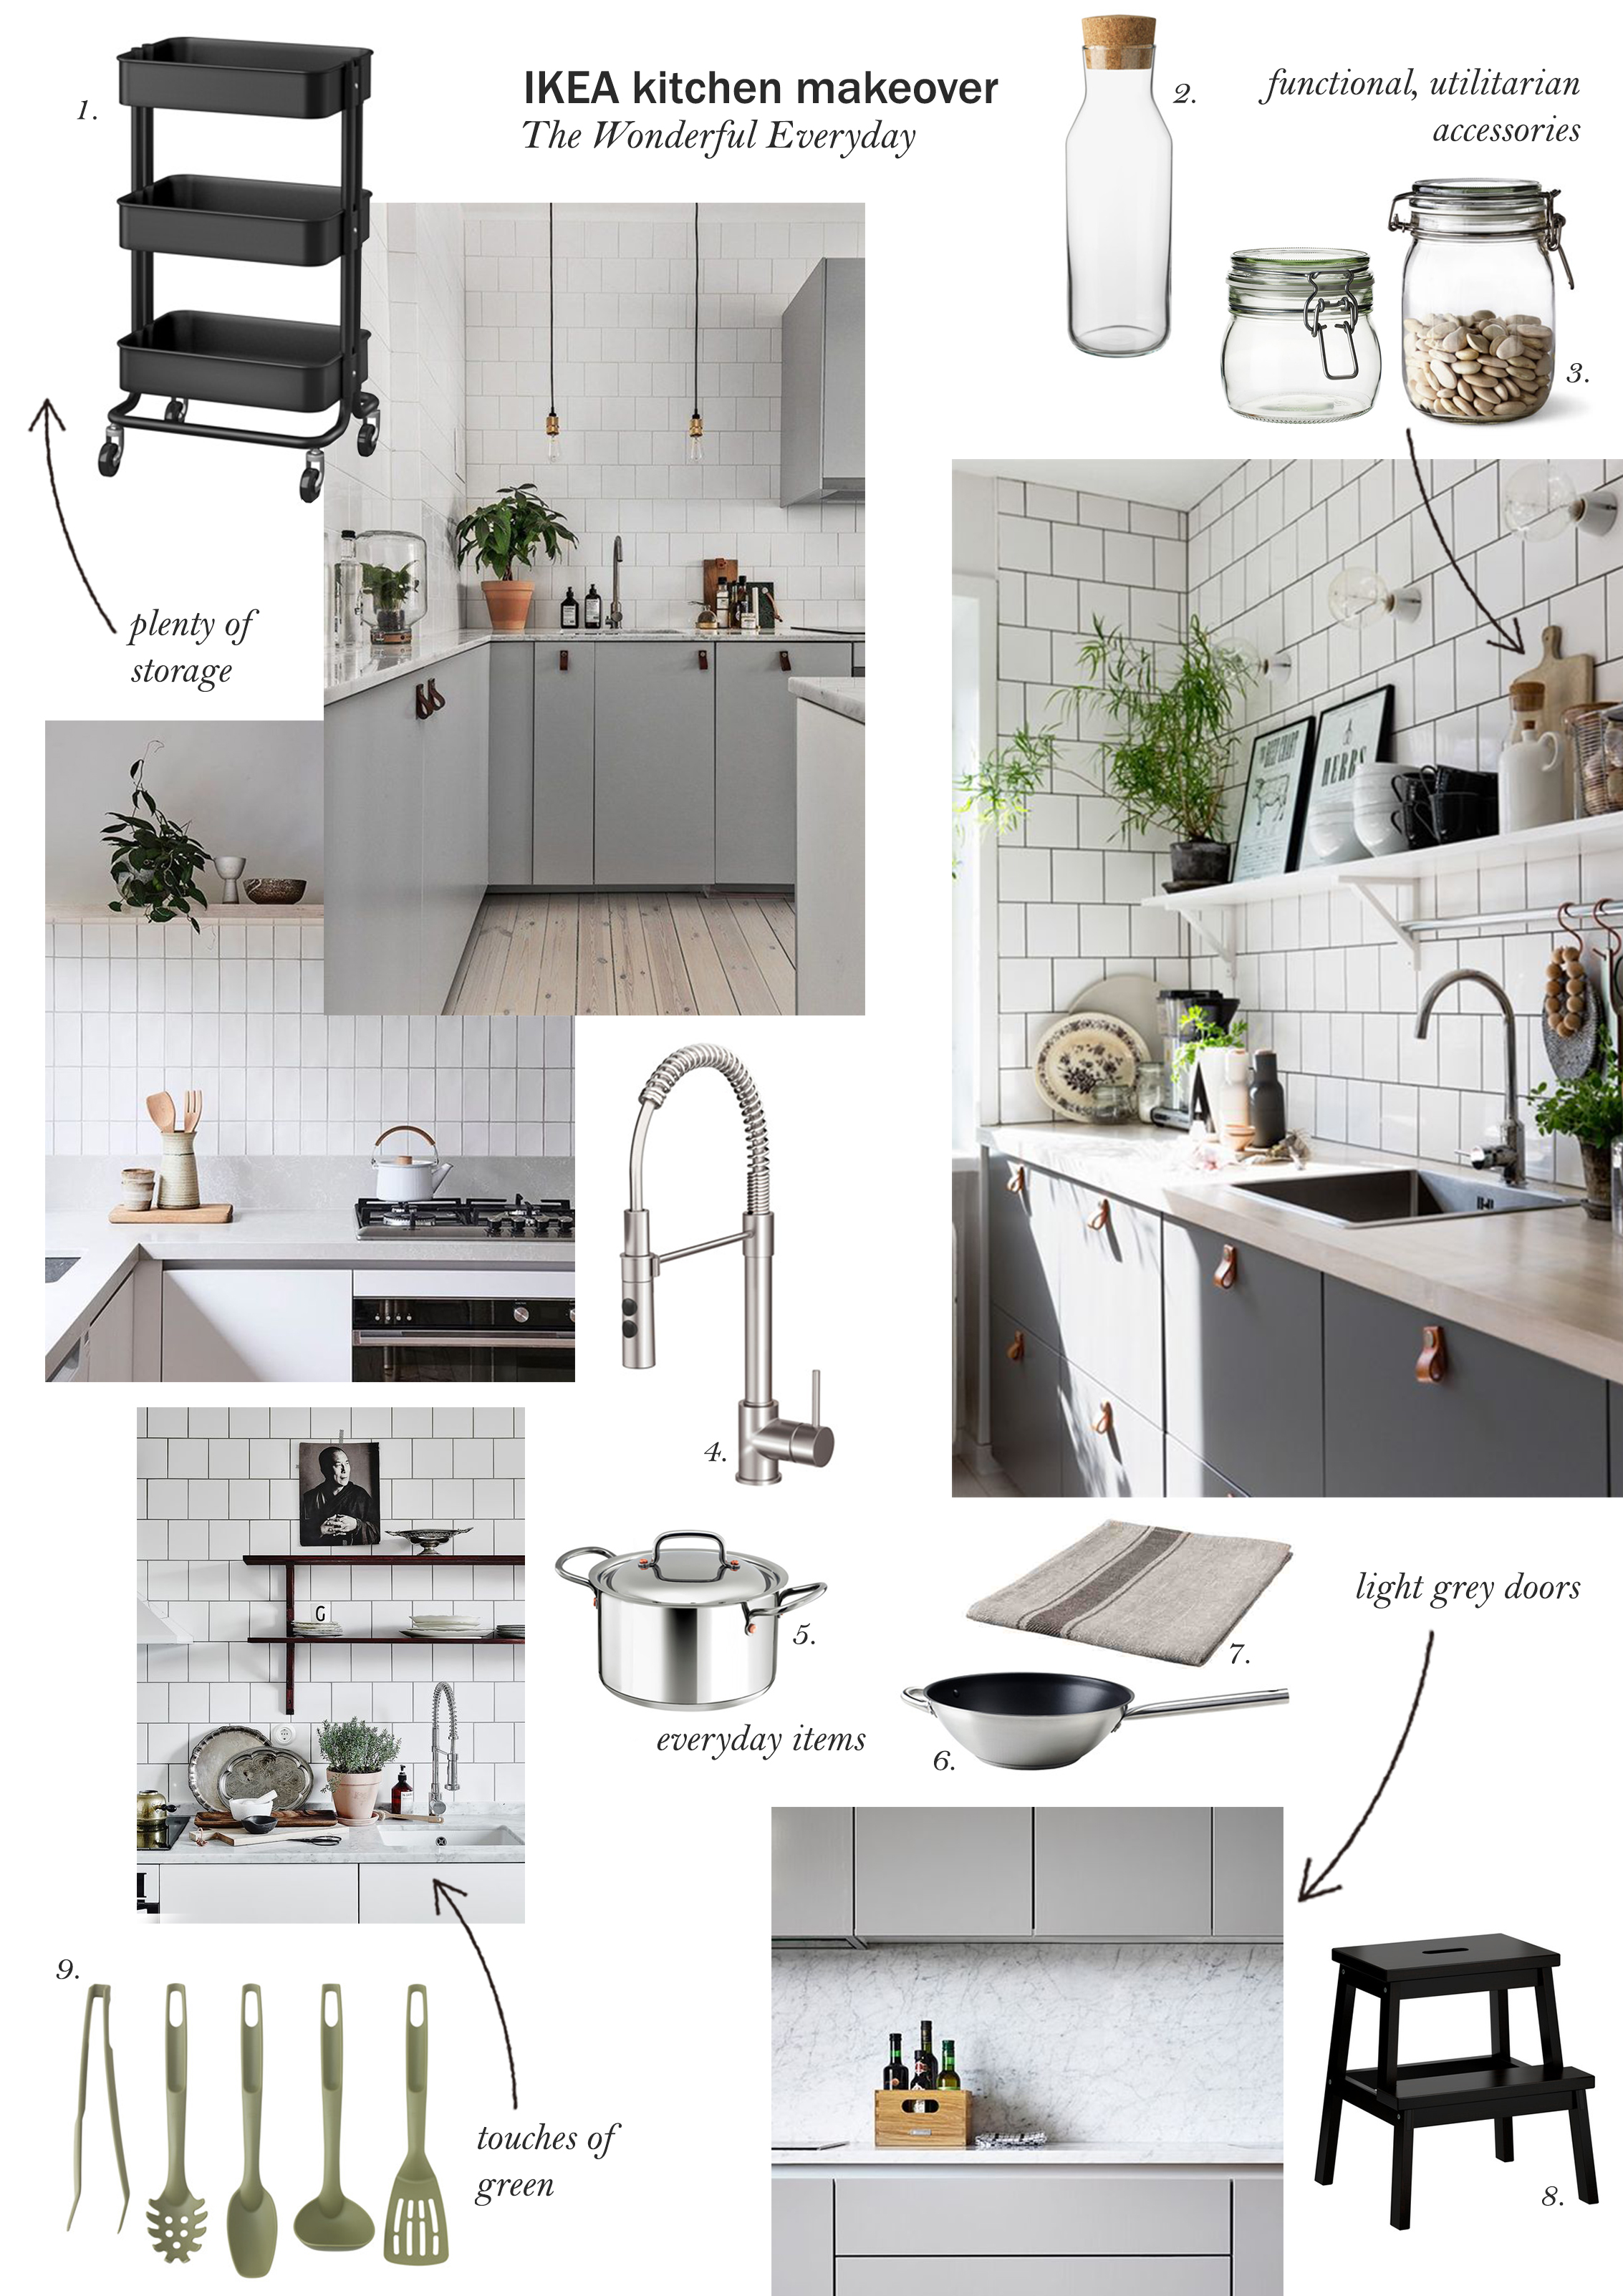 IKEA kitchen makeover - cate st hill